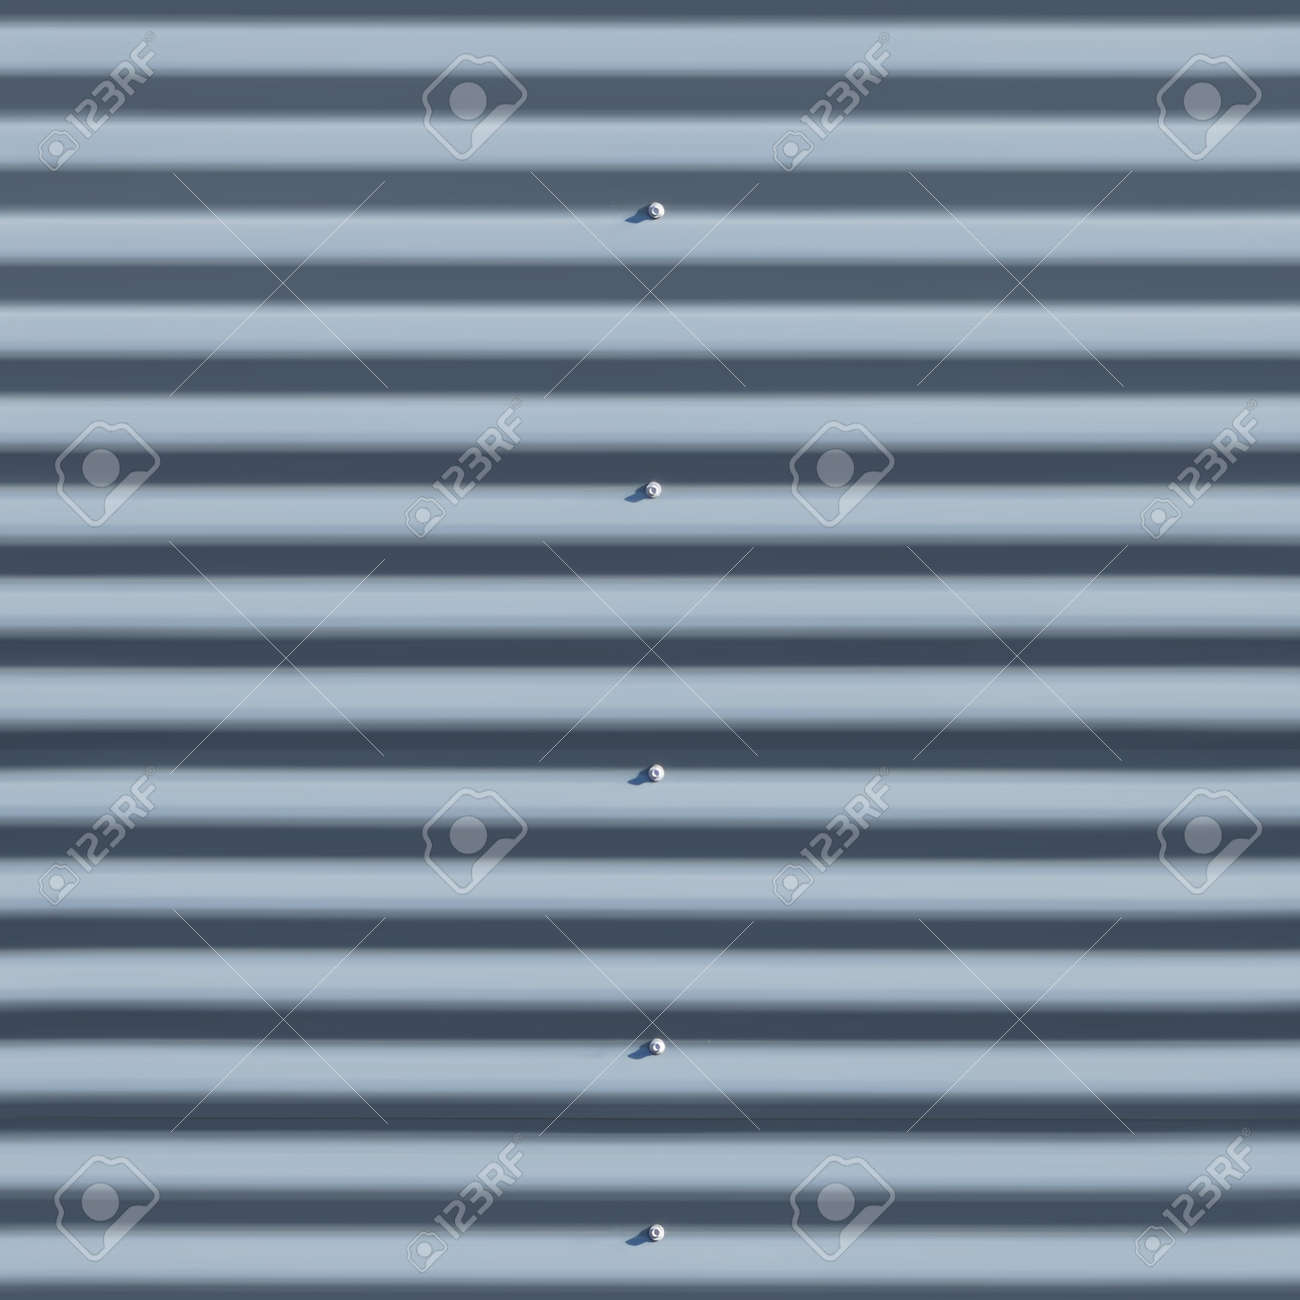 Gray waved sandwich panel wall seamless texture or pattern